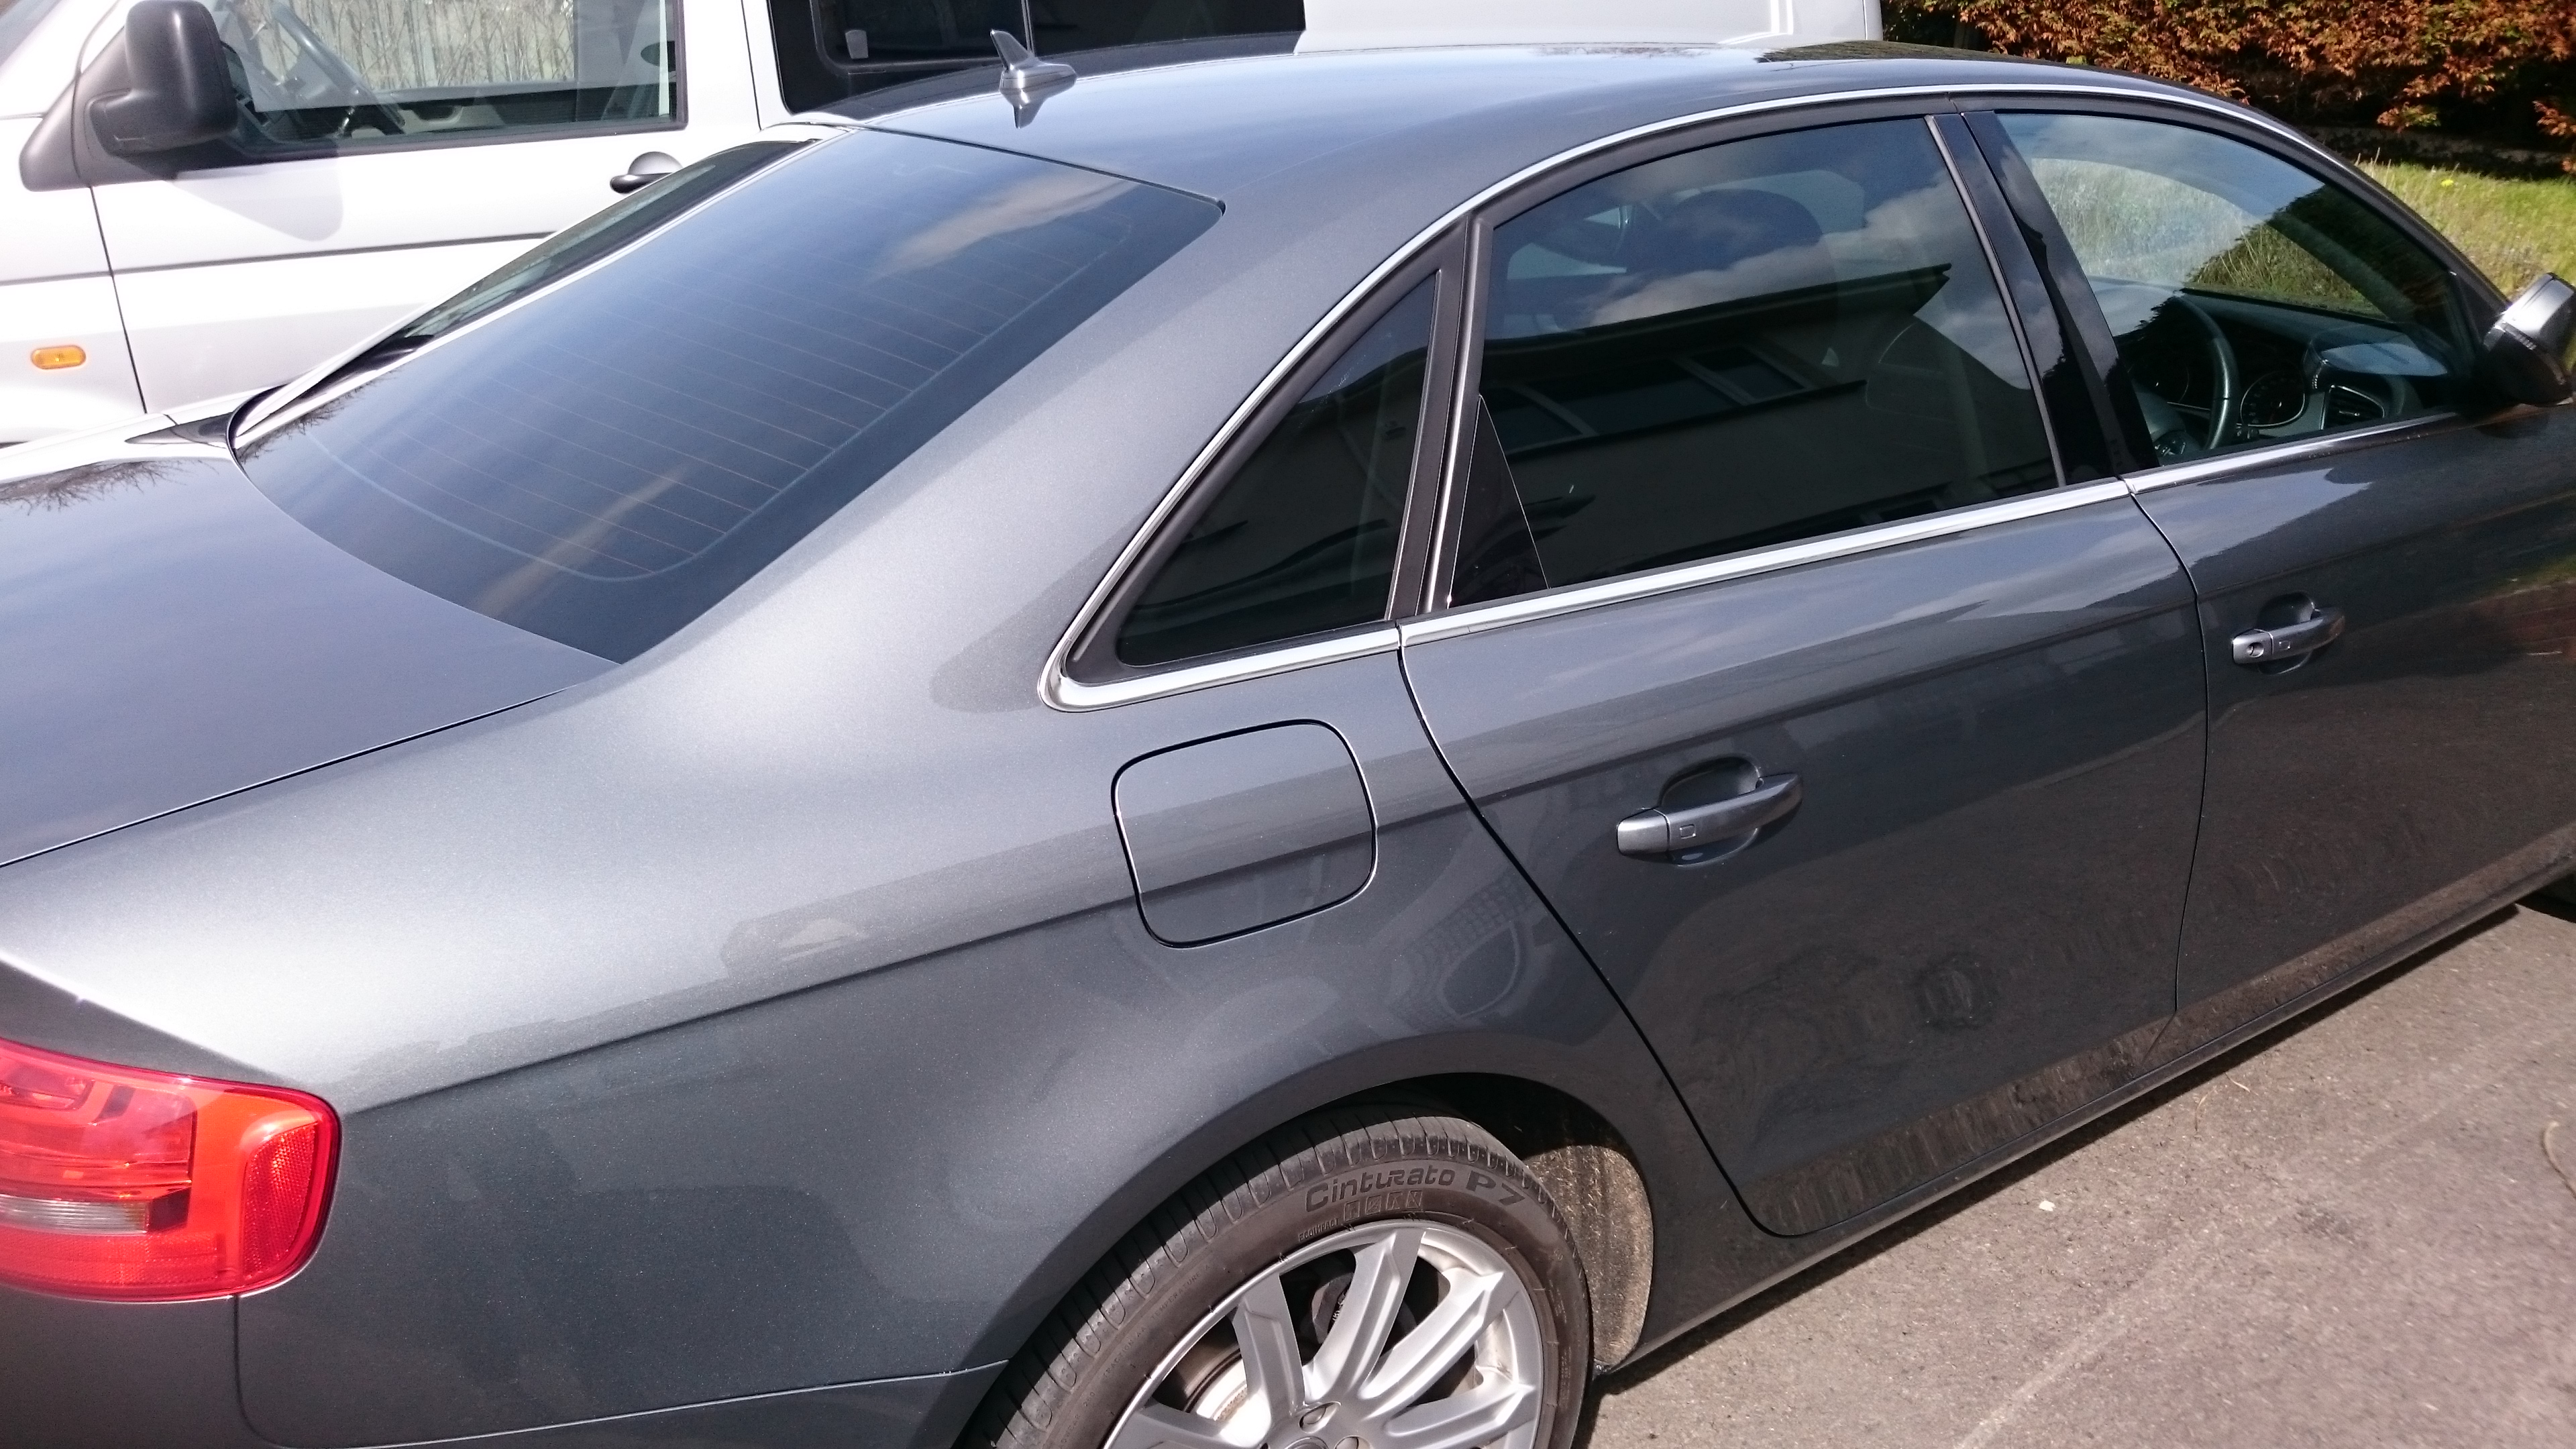 Audi A4 saloon auto window tinting completed job. 18% visible light transmission film. Blocking out 82% light. Tinting Express Ltd Barnstaple